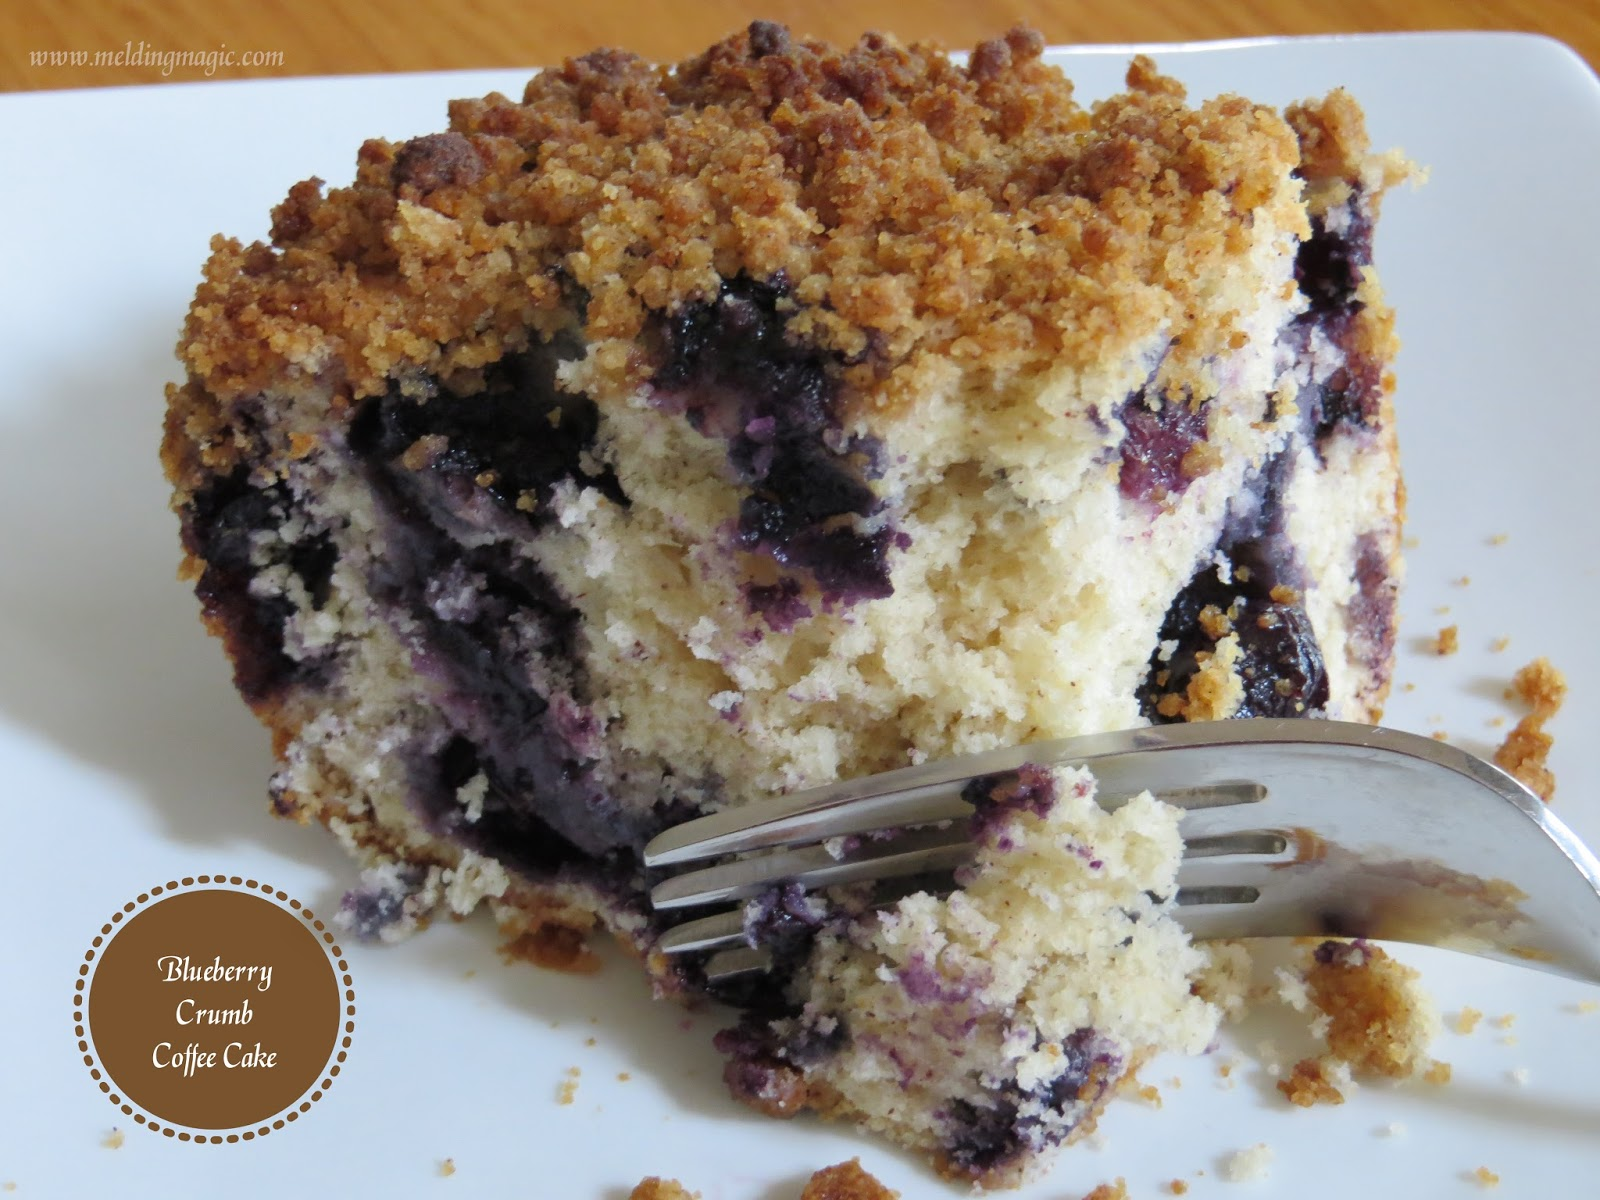 big crumb coffee cake behemoth crumb cake classic crumb cake blueberry ...